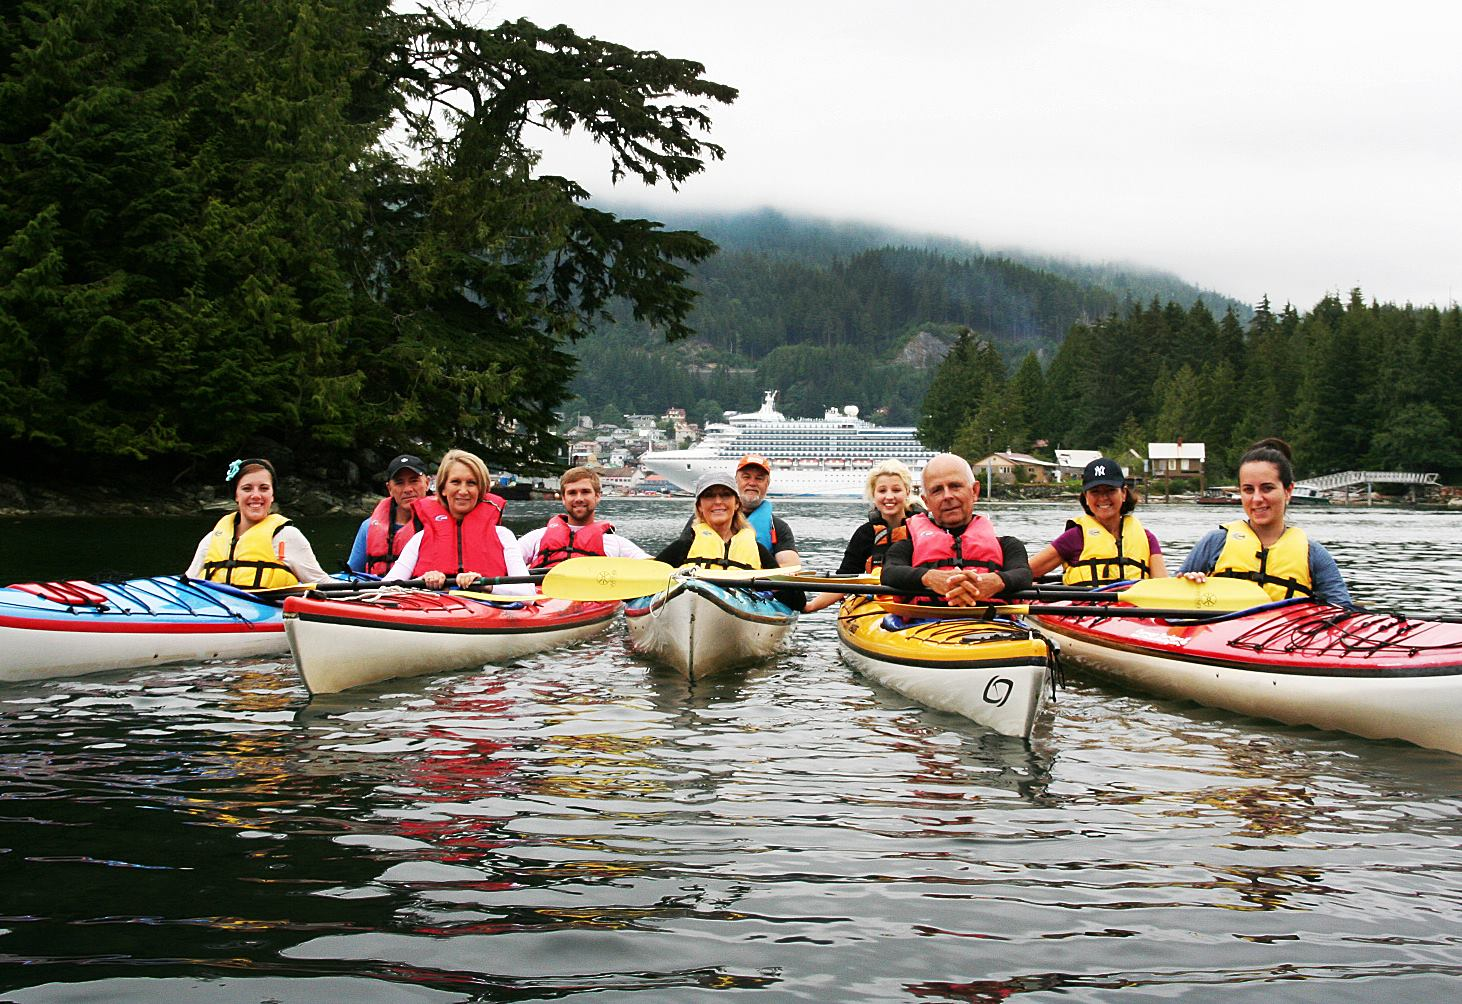 Bring the whole family kayaking in Ketchikan!